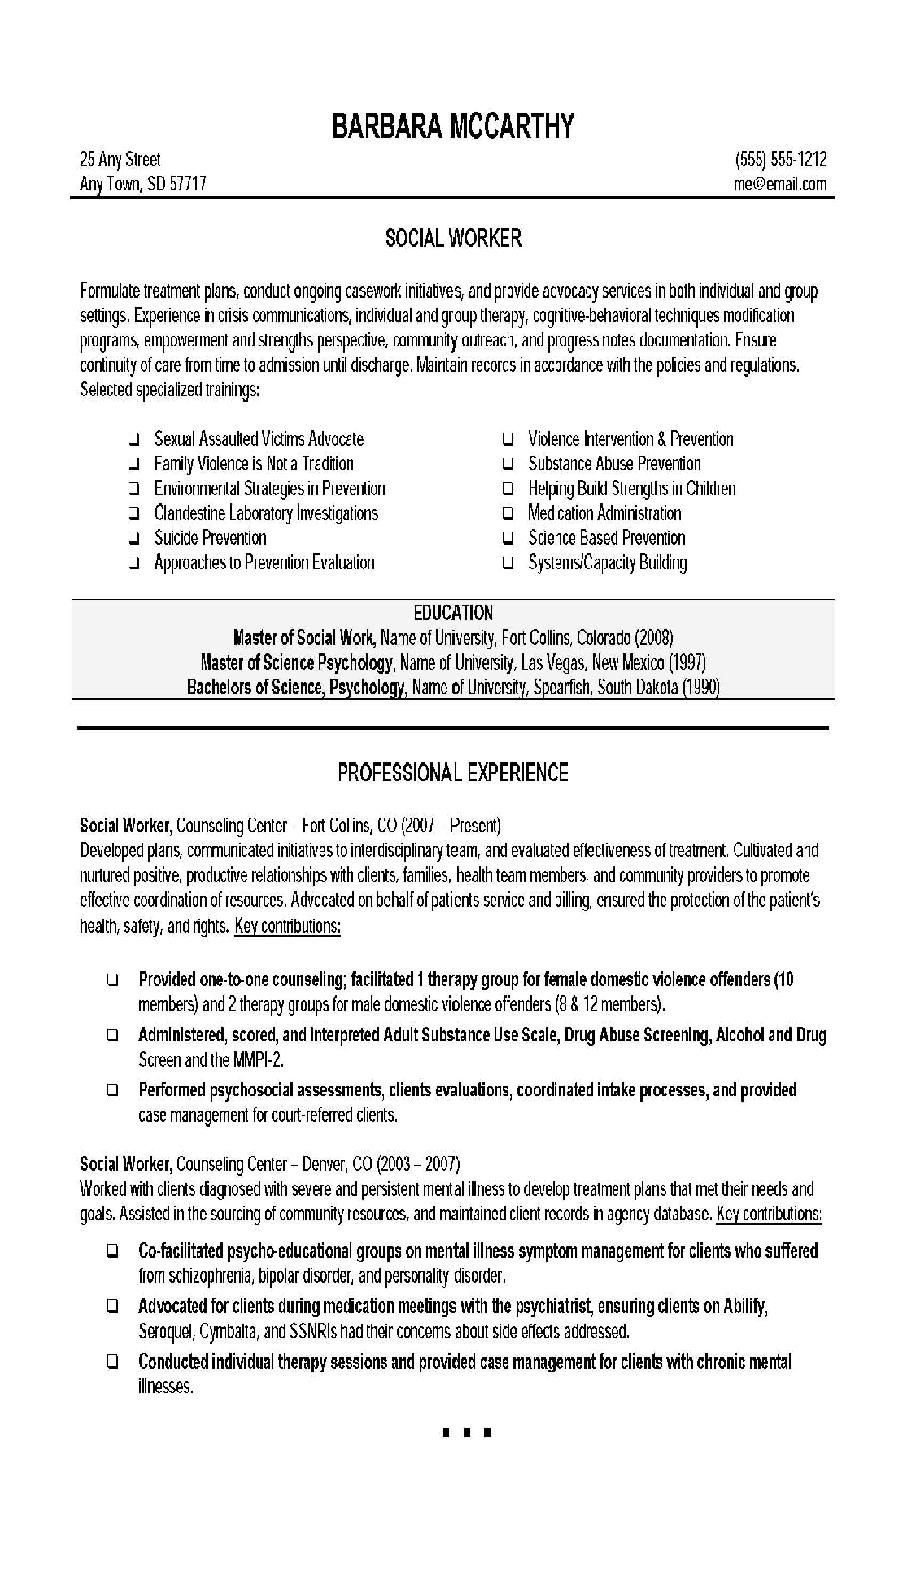 Warehouse Resume Sample Social Worker Resume 4  Social Work  Pinterest  Social Work